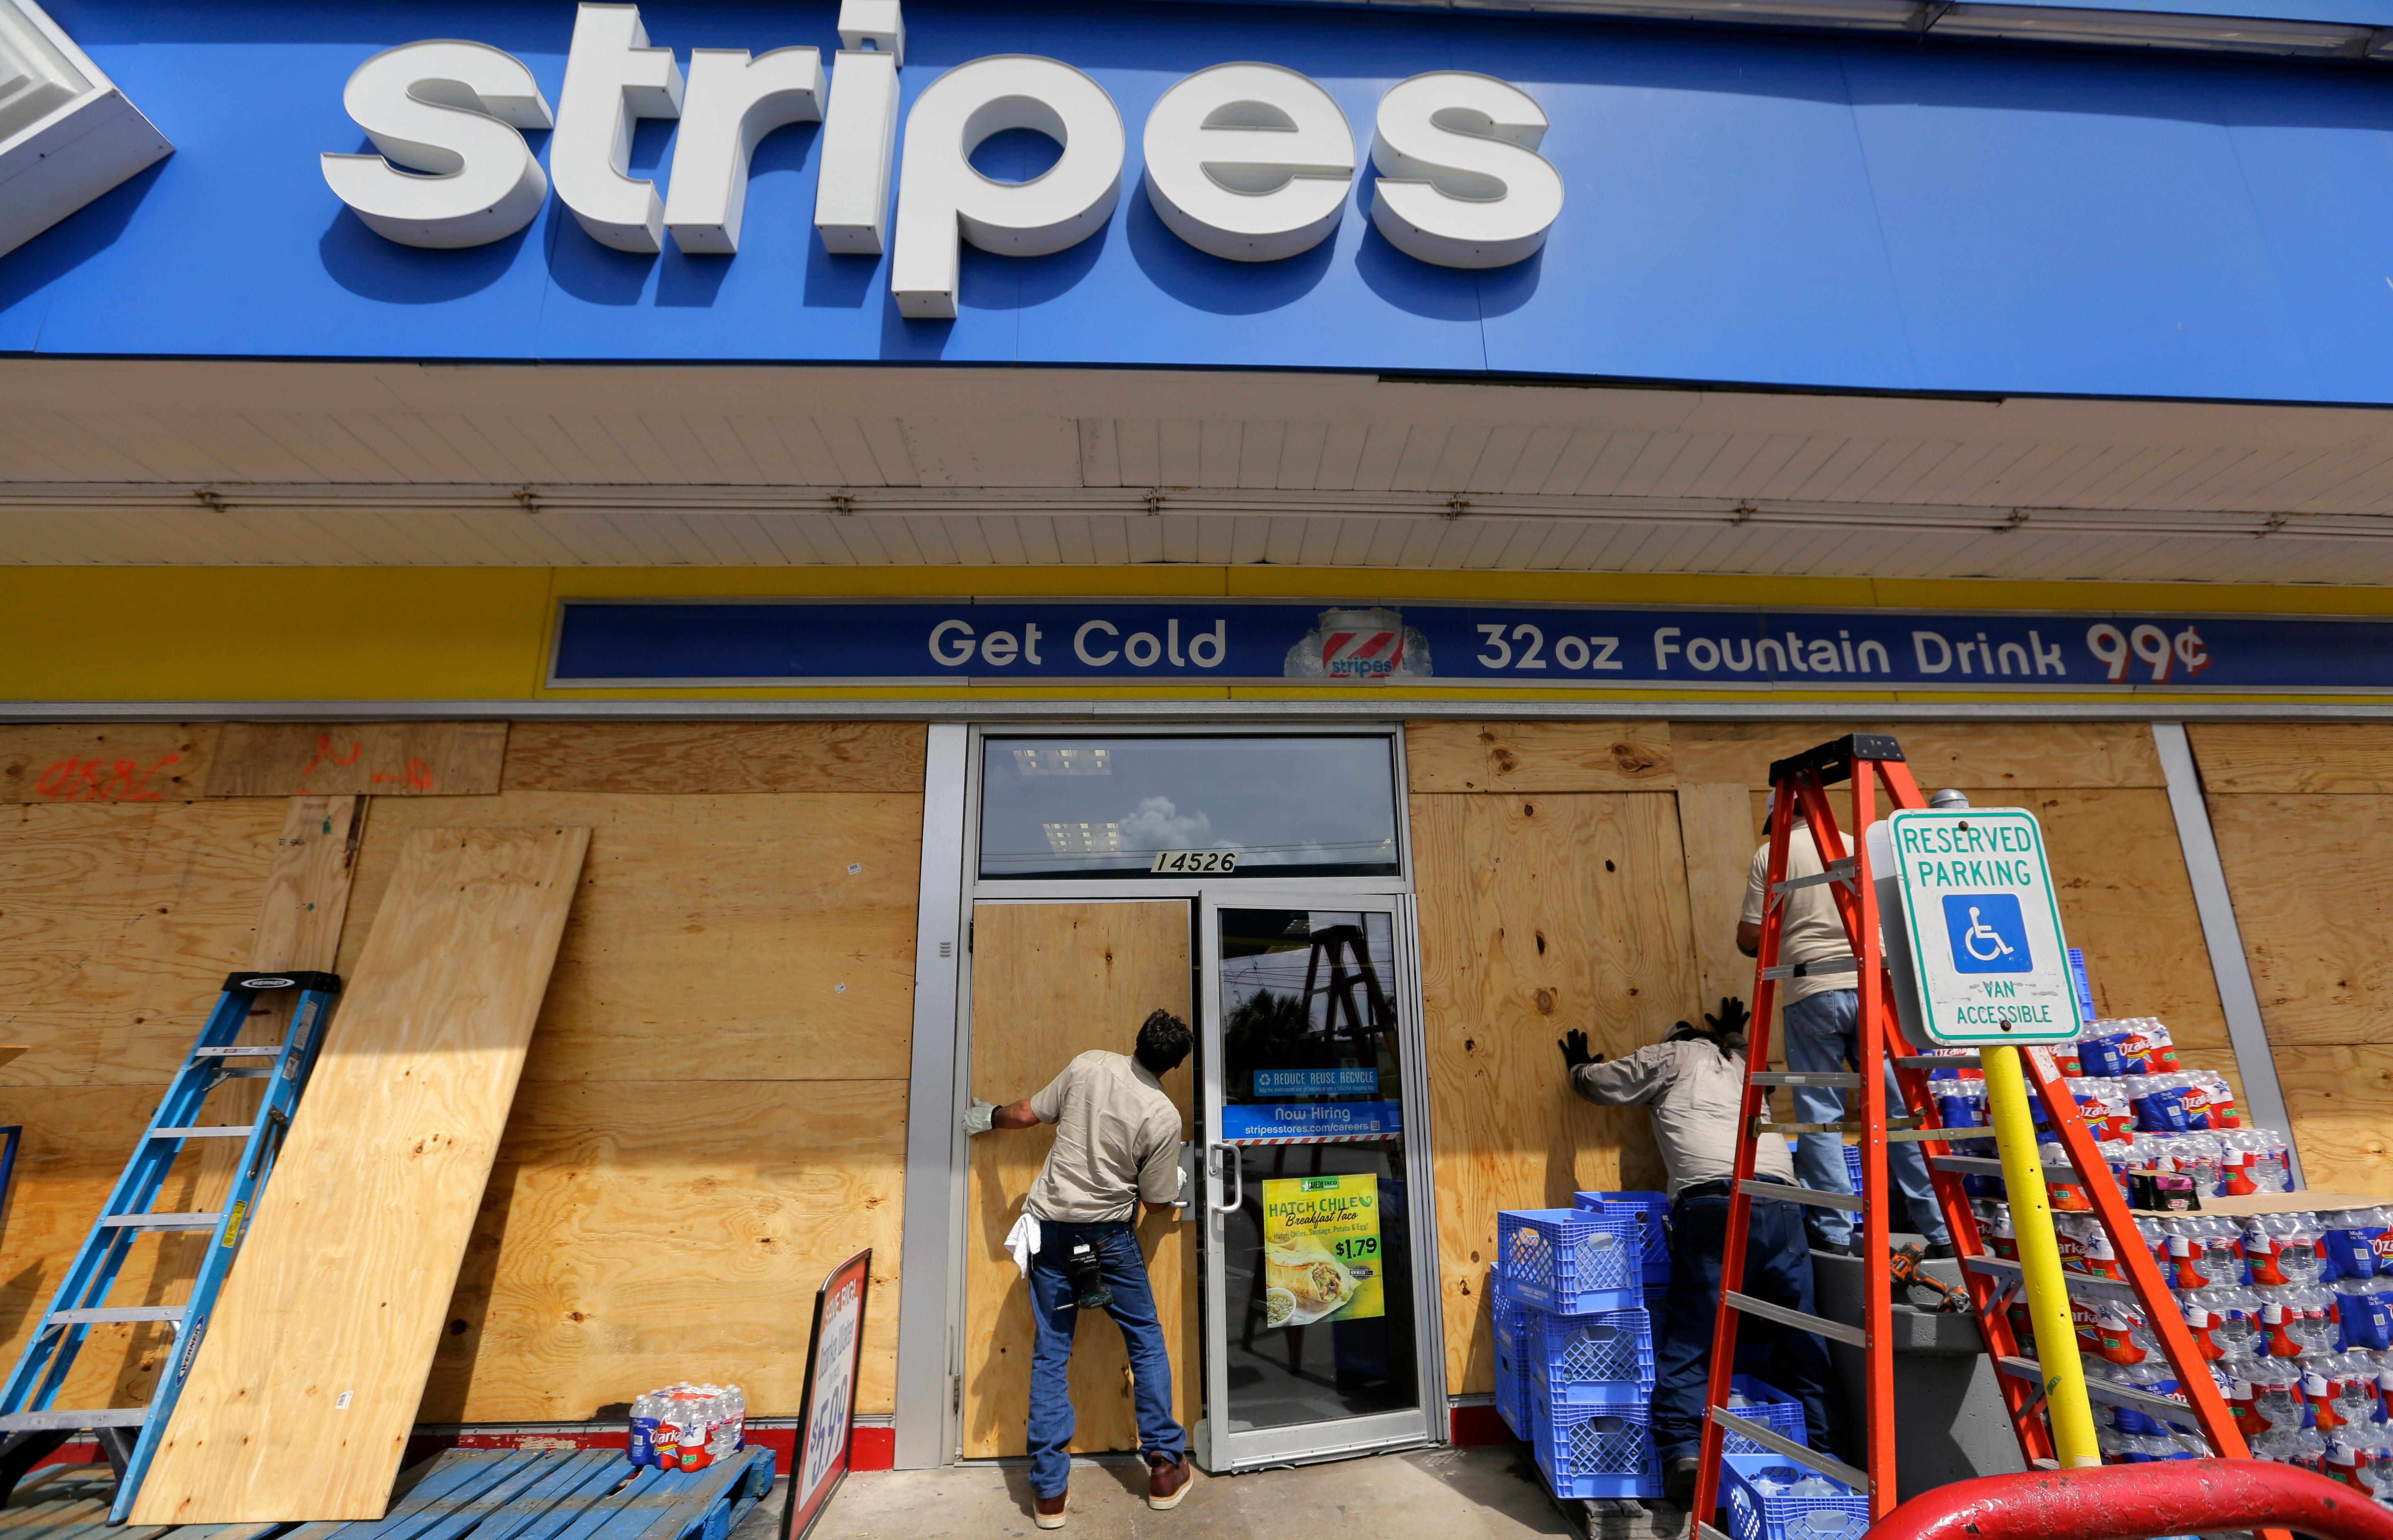 Stripes store workers board up windows in preparation for Hurricane Harvey, Thursday, Aug. 24, 2017, in Corpus Christi, Texas. Two counties have ordered mandatory evacuations as Hurricane Harvey gathers strength as it drifts toward the Texas Gulf Coast.   (AP Photo/Eric Gay)